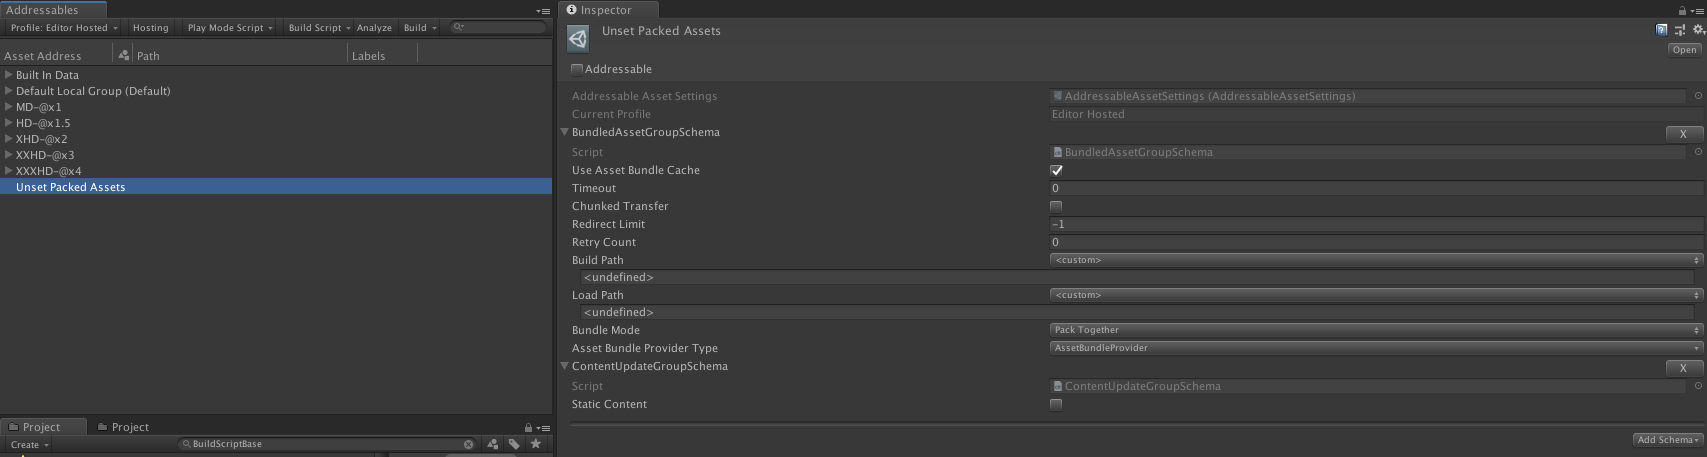 Addressables are here! | Page 5 - Unity Forum